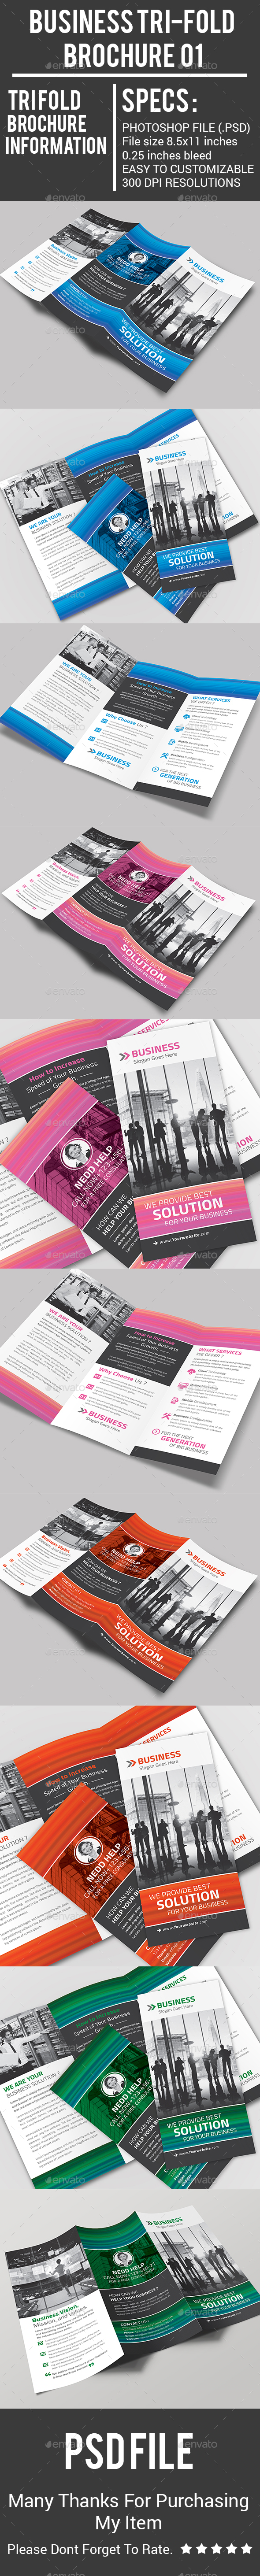 Business Tri-Fold Brochure 01 - Corporate Brochures